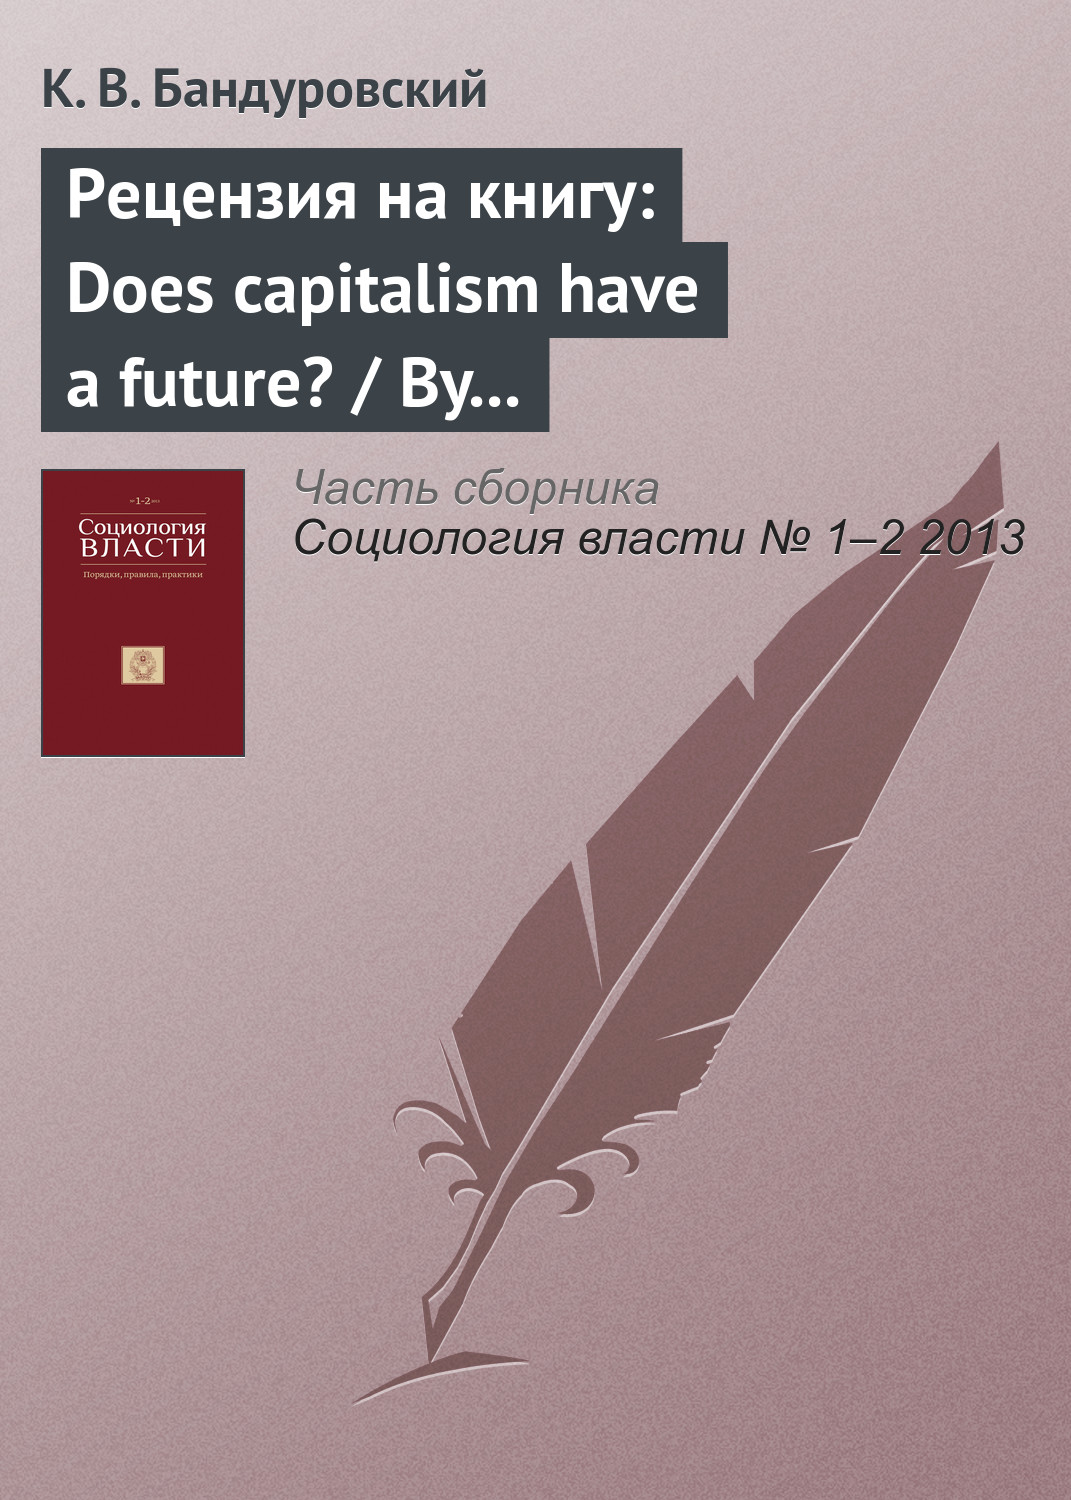 Рецензия на книгу: Does capitalism have a future? / By Immanuel Wallerstein, Randall Collins, Michael Mann, Georgi Derluguian and Craig Calhoun. NY.: Oxford University Press, 2013. 202 р.